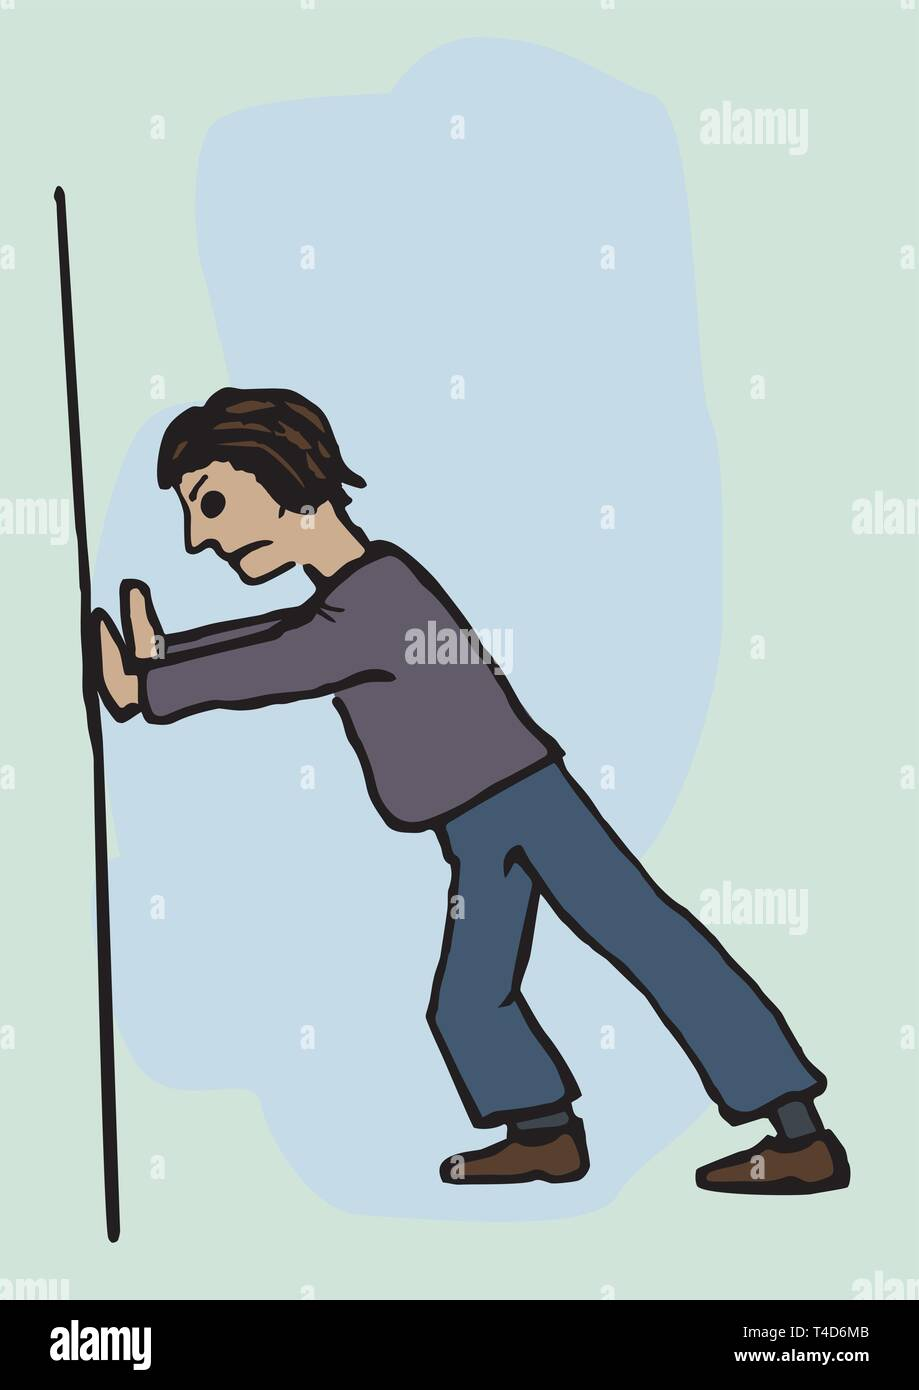 A man pushing against the wall - Stock Vector